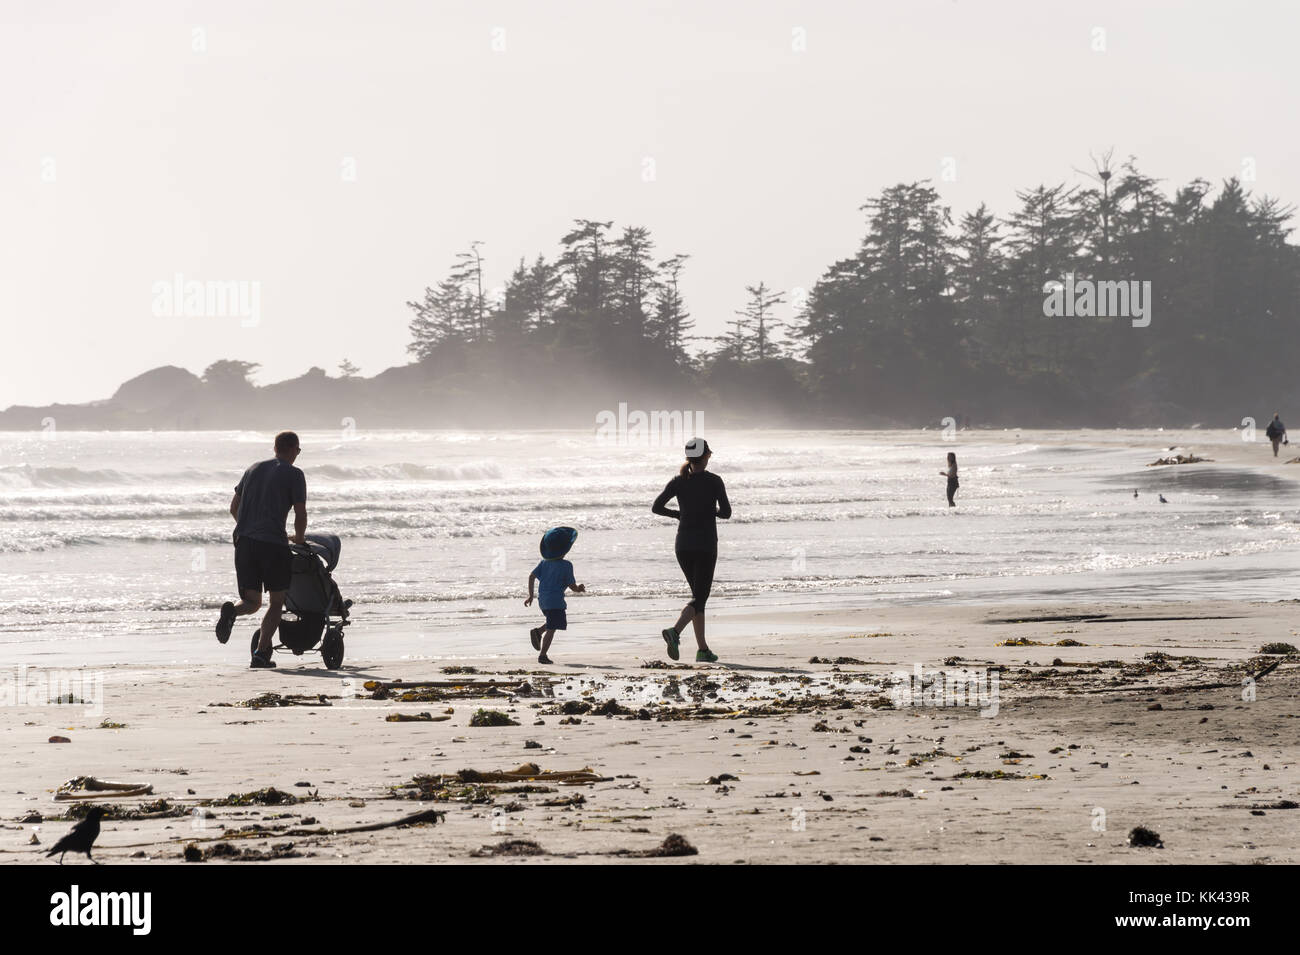 Chesterman beach près de Tofino, Colombie-Britannique, Canada (septembre 2017) - Famille d'exécution Photo Stock